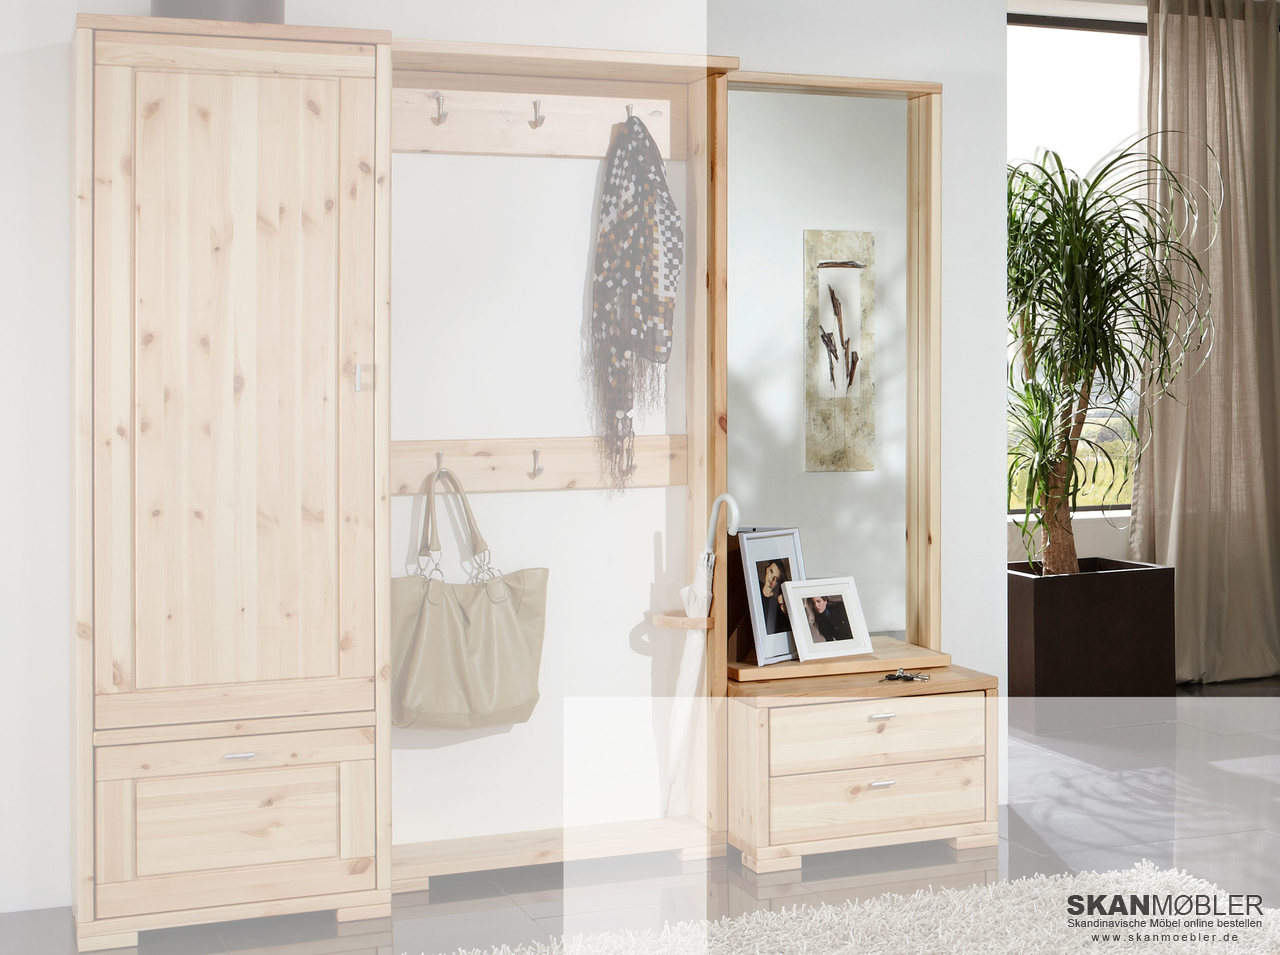 spiegelpanel f r garderobe guldborg von pinus g nstig bestellen bei skanm bler. Black Bedroom Furniture Sets. Home Design Ideas